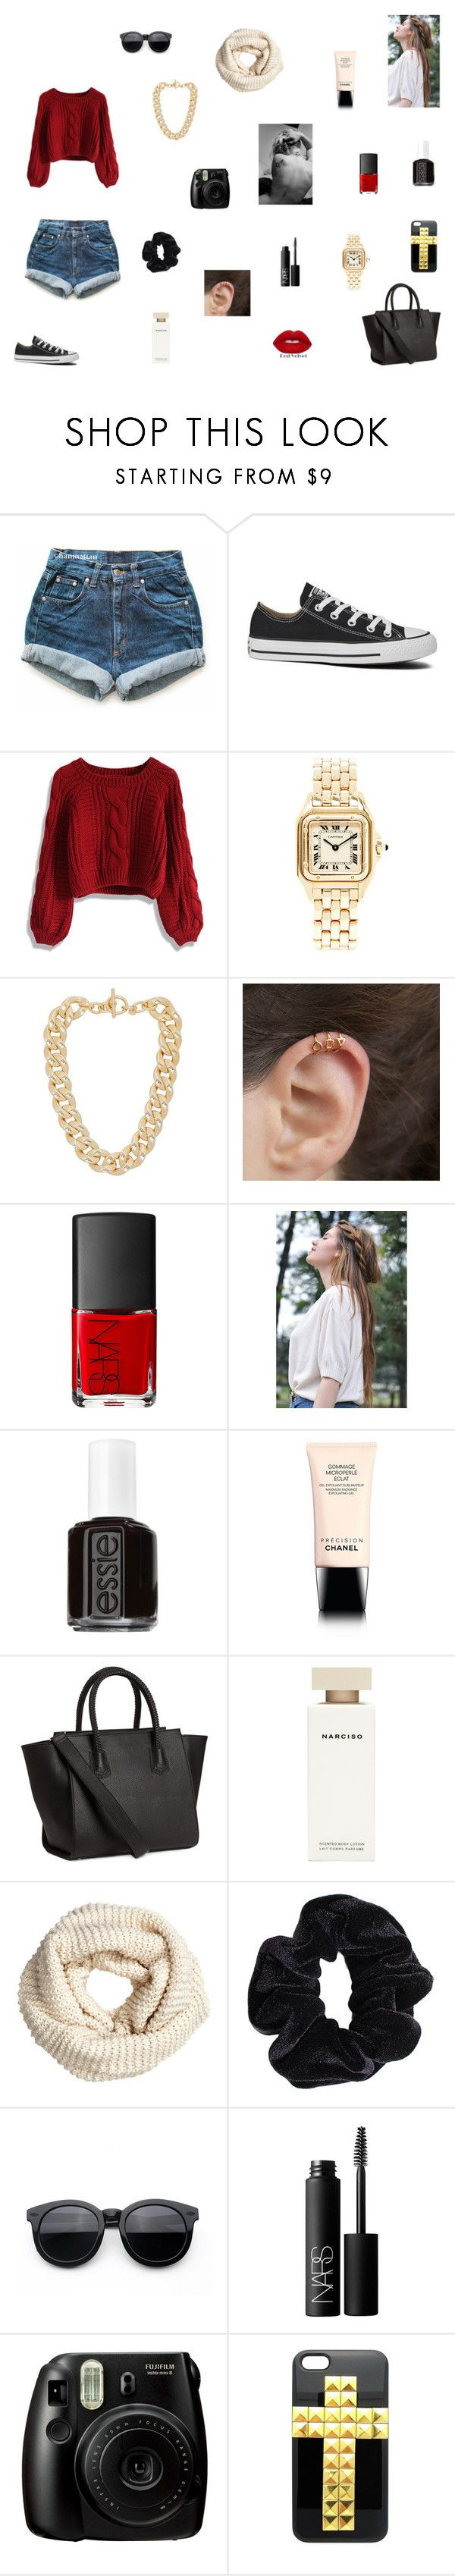 """""""Bbhjbjhhbugbugb"""" by camila-aljustrel-2002 ❤ liked on Polyvore featuring Levi's, Converse, Chicwish, Michael Kors, NARS Cosmetics, Lime Crime, Essie, Chanel, H&M and Narciso Rodriguez"""